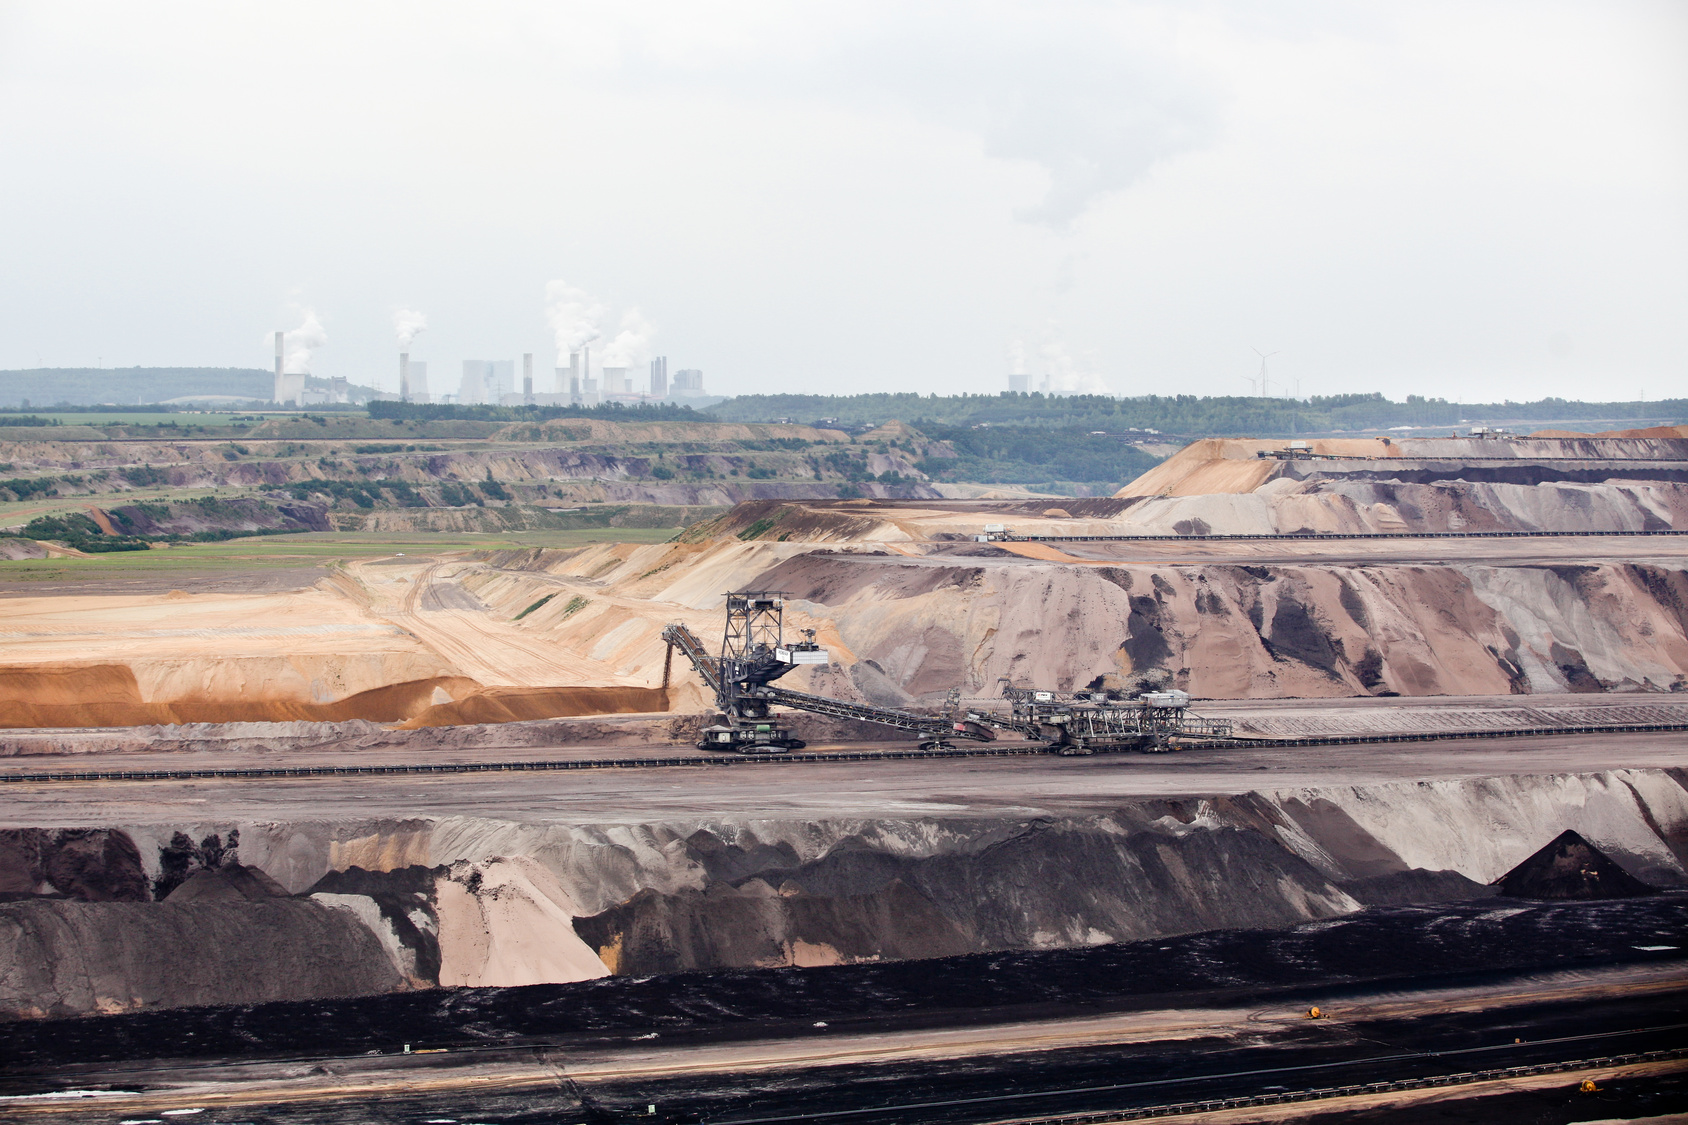 open pit mining in the lower rhine brown coal mining area